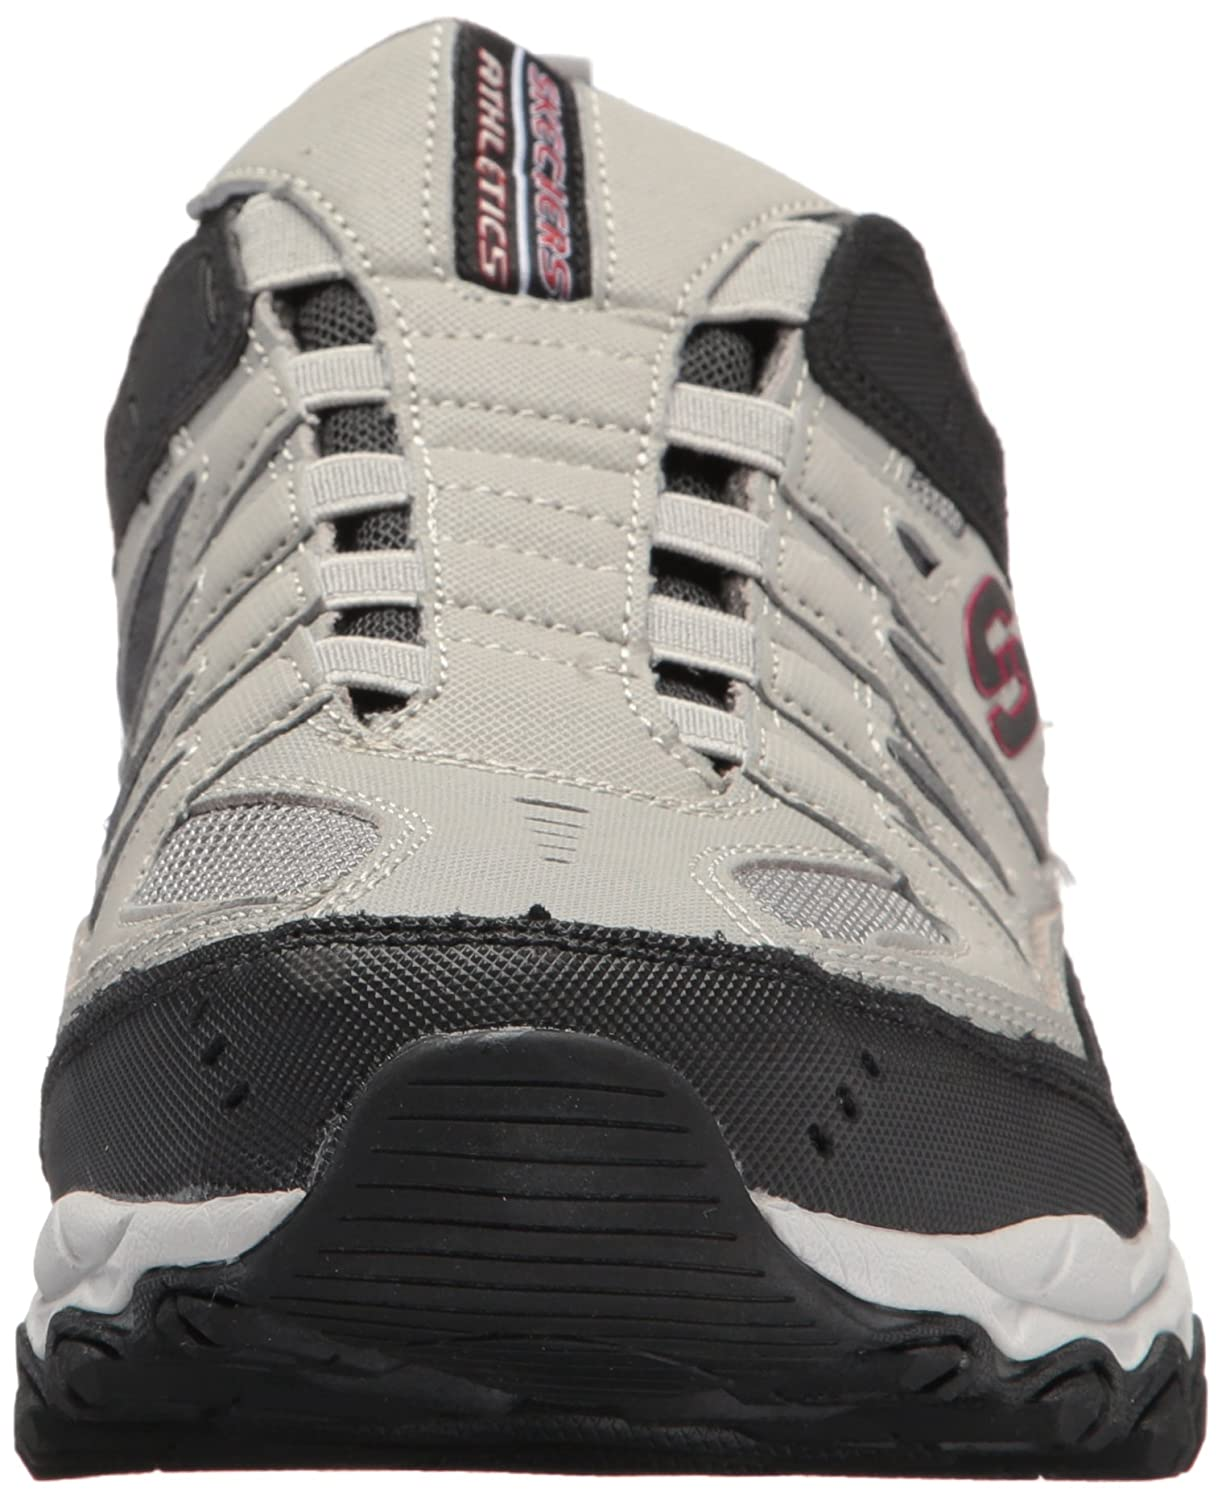 Skechers-Afterburn-Memory-Foam-M-Fit-Men-039-s-Sport-After-Burn-Sneakers-Shoes thumbnail 50